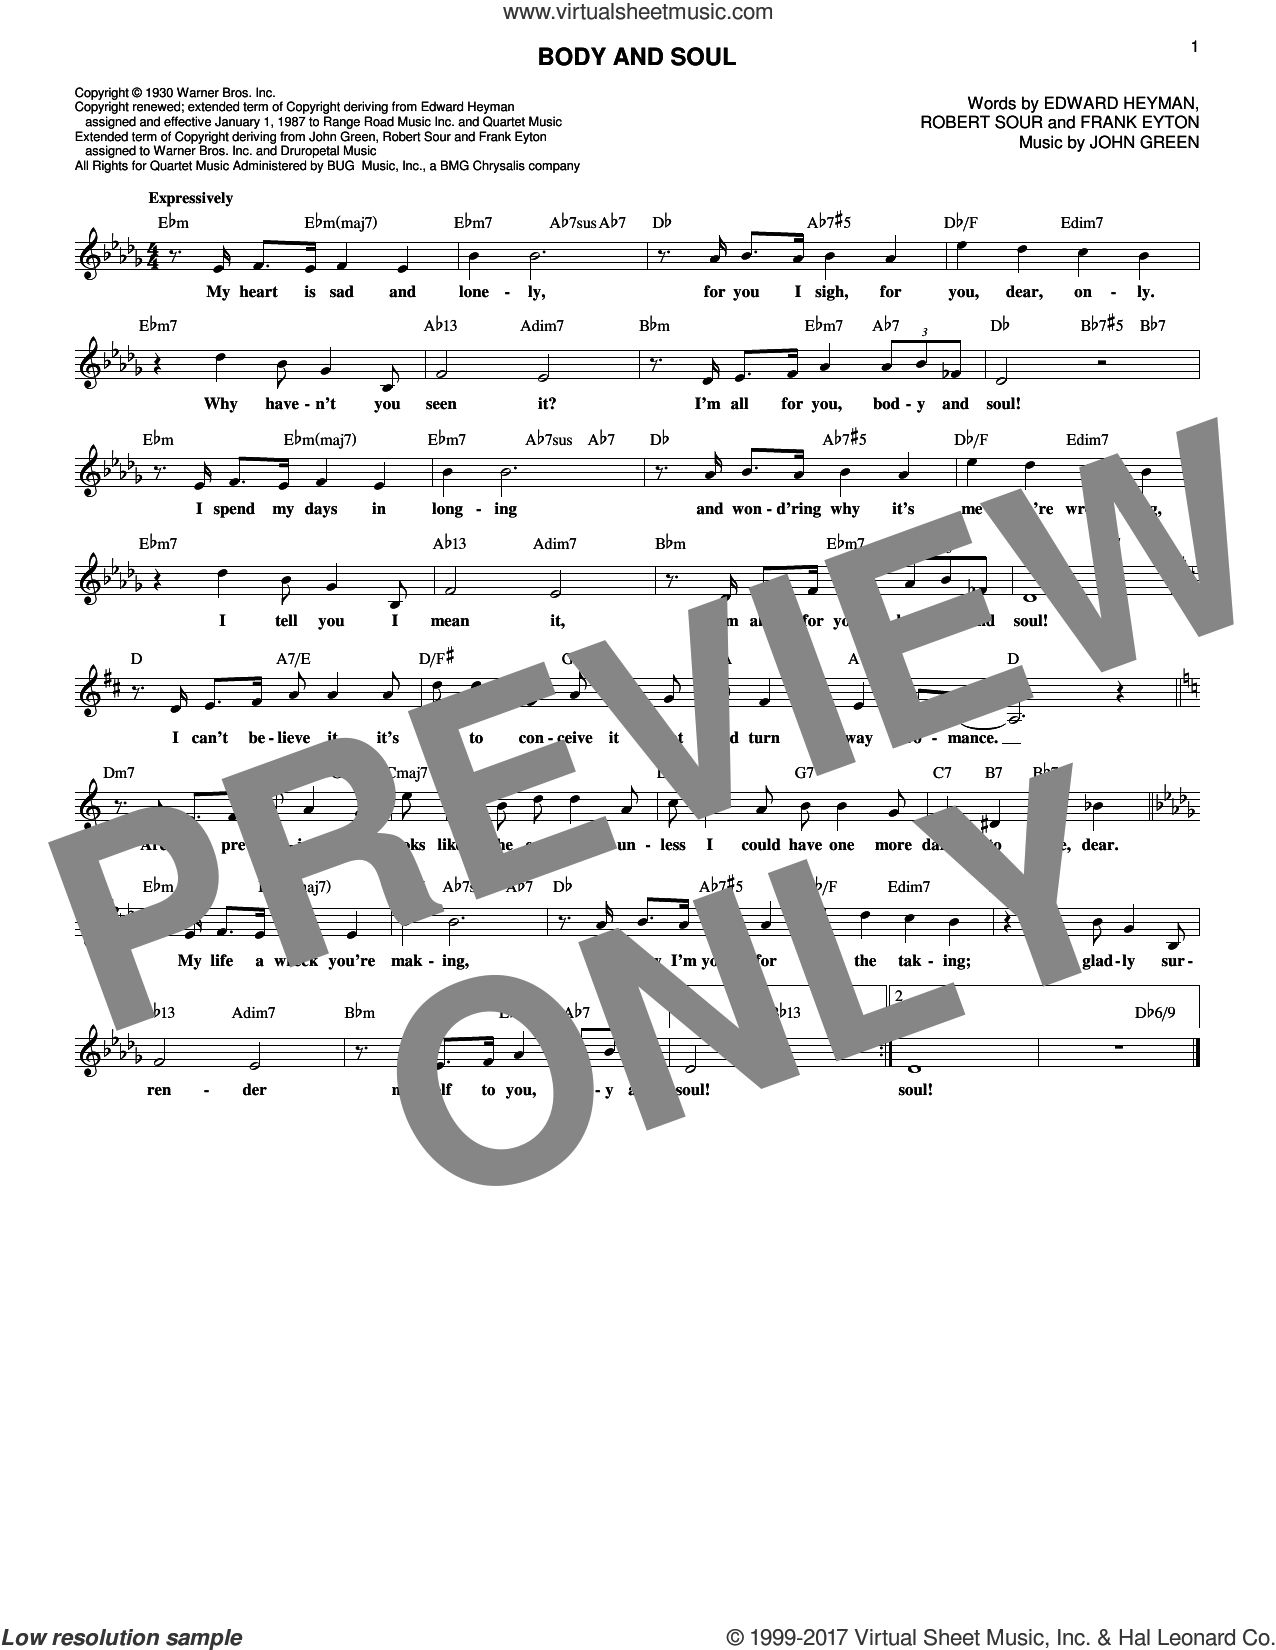 Body And Soul sheet music for voice and other instruments (fake book) by Tony Bennett & Amy Winehouse, Edward Heyman, Frank Eyton, Johnny Green and Robert Sour, intermediate skill level